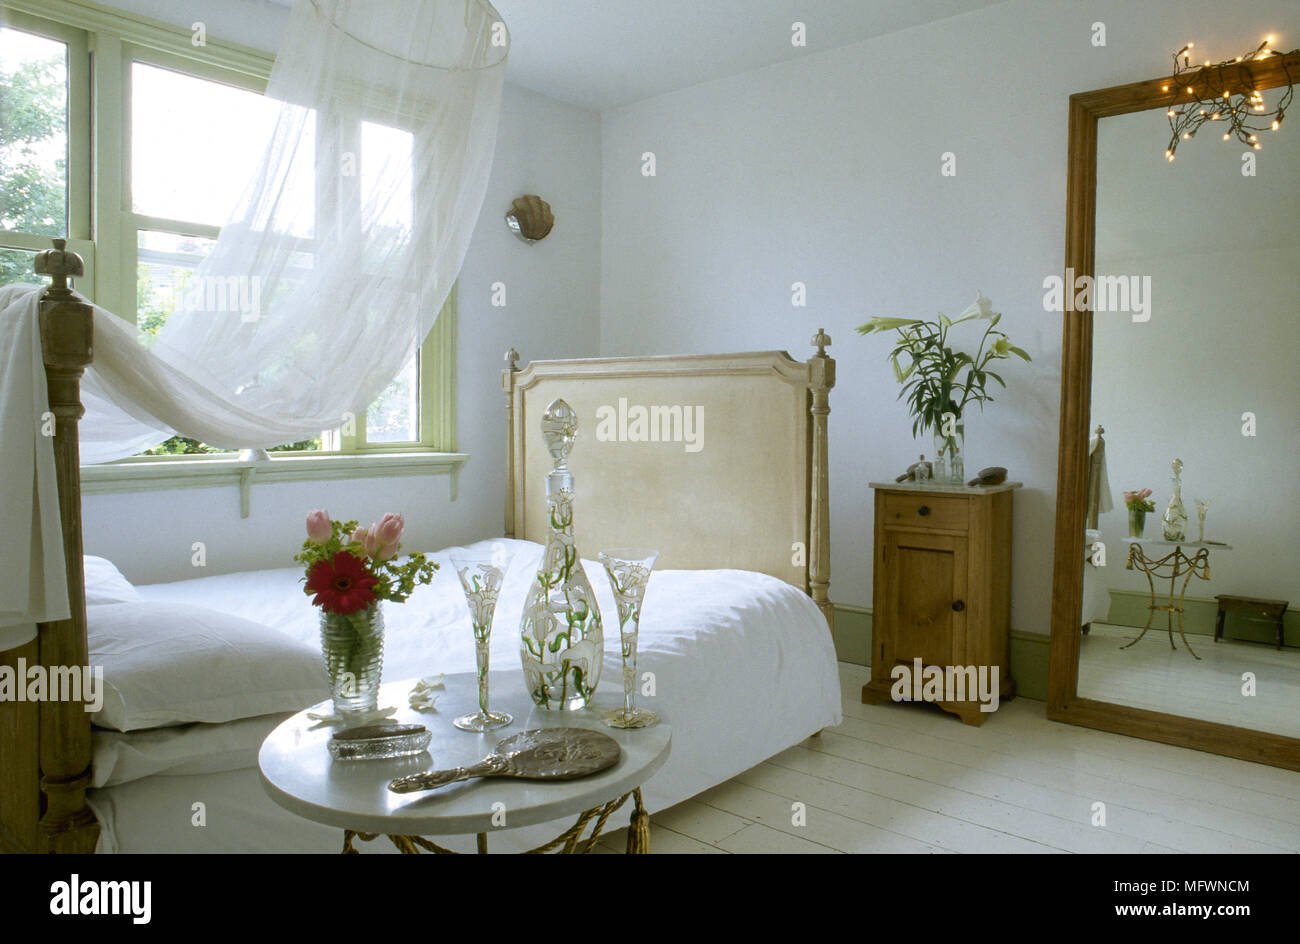 Romantic Bedroom With Sheer Canopy Over A Double Bed Large Mirror Bedside Table And A Sunny Window Stock Photo Alamy